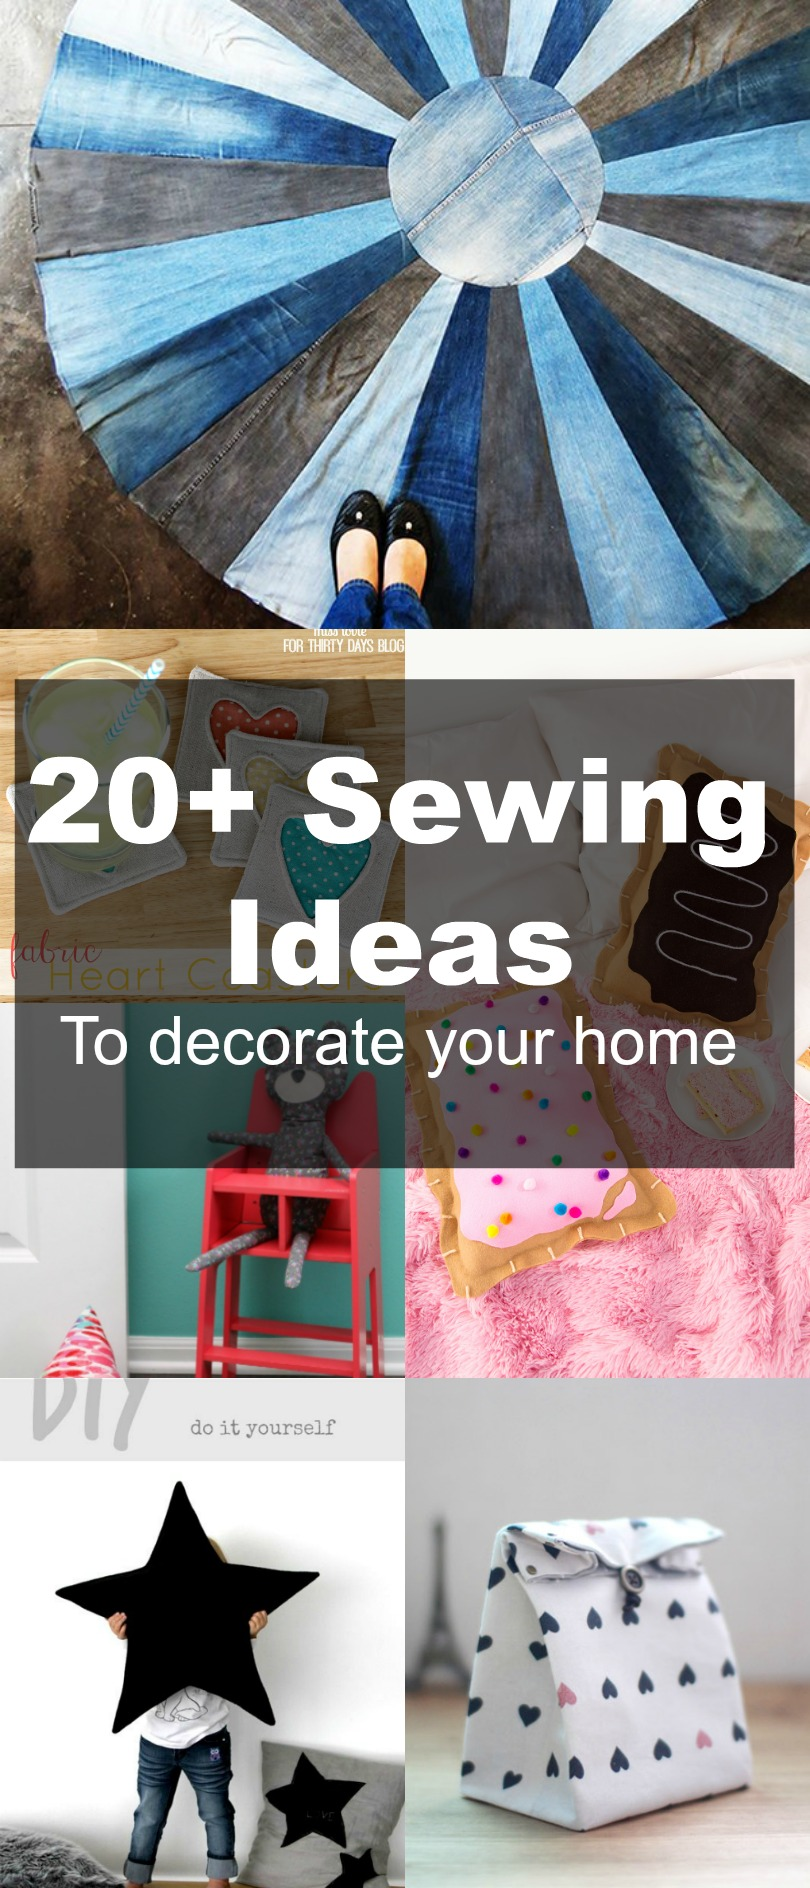 FREE SEWING PATTERNS: 20+ Home Decor Ideas To Sew